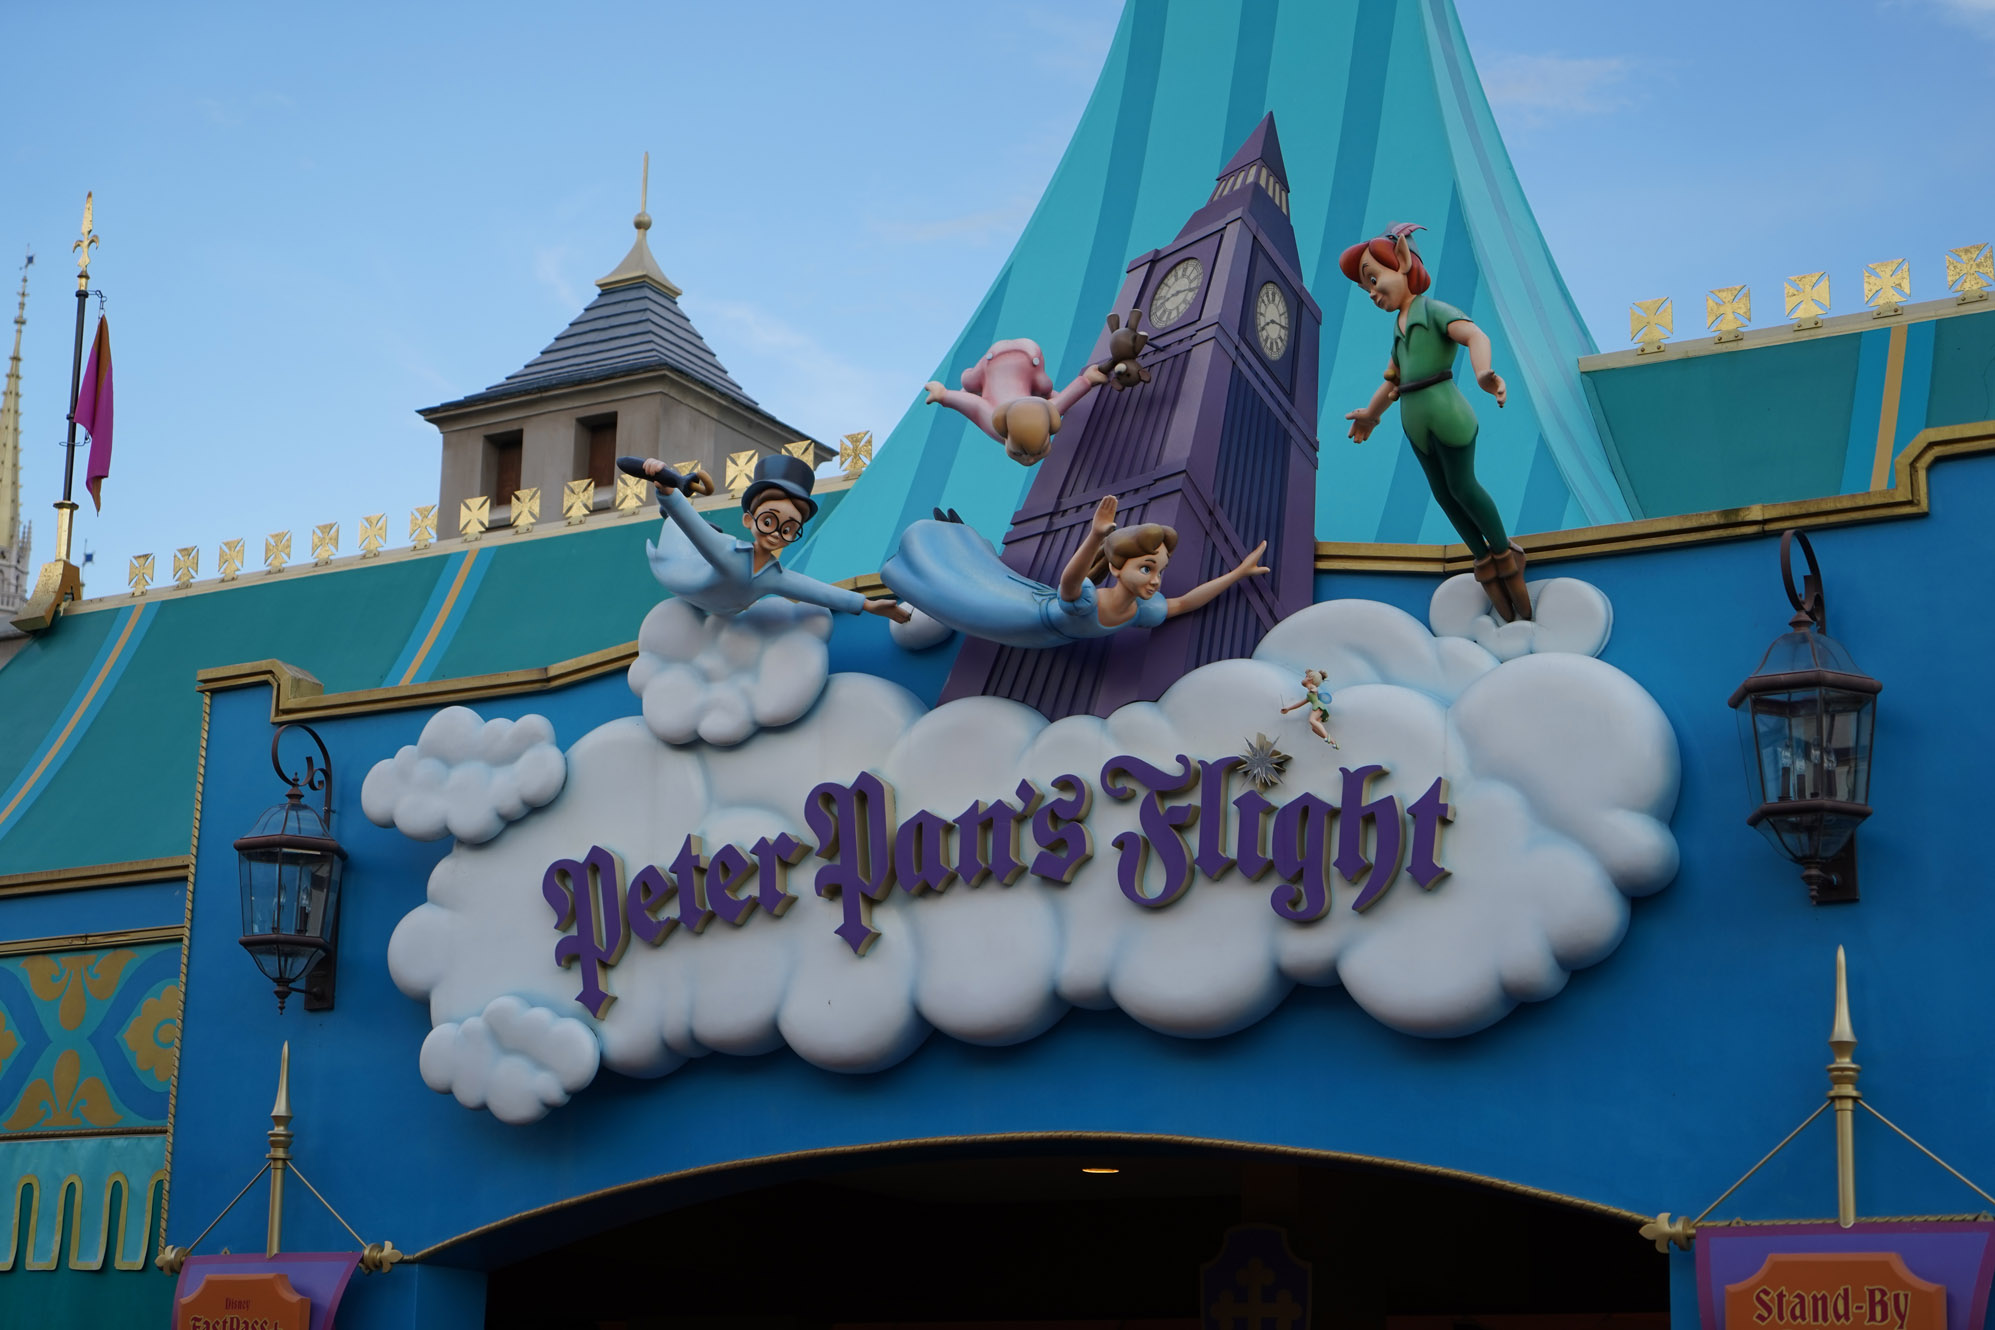 Peter Pan's Flight ride at Magic Kingdom